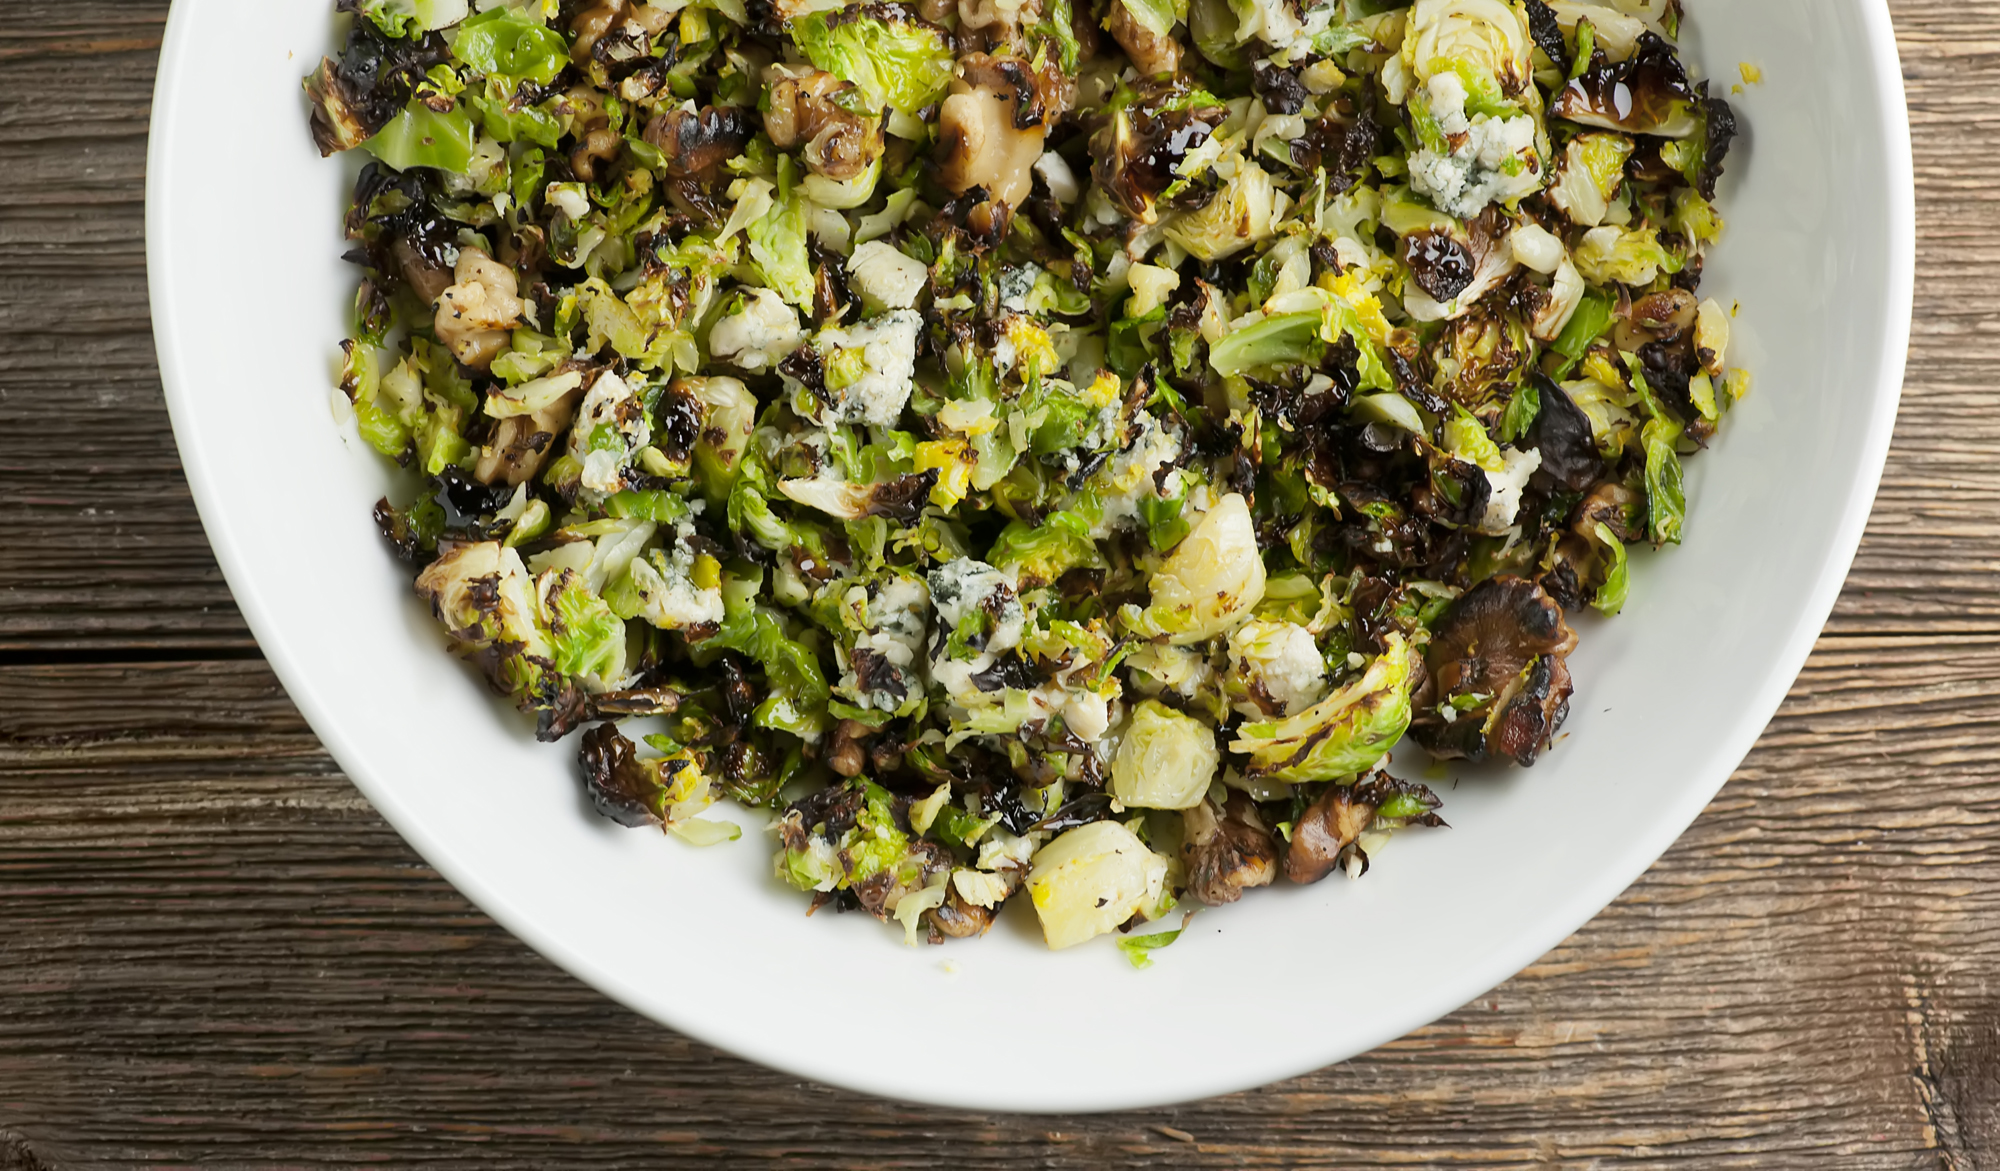 chopped brussels sprouts with feta